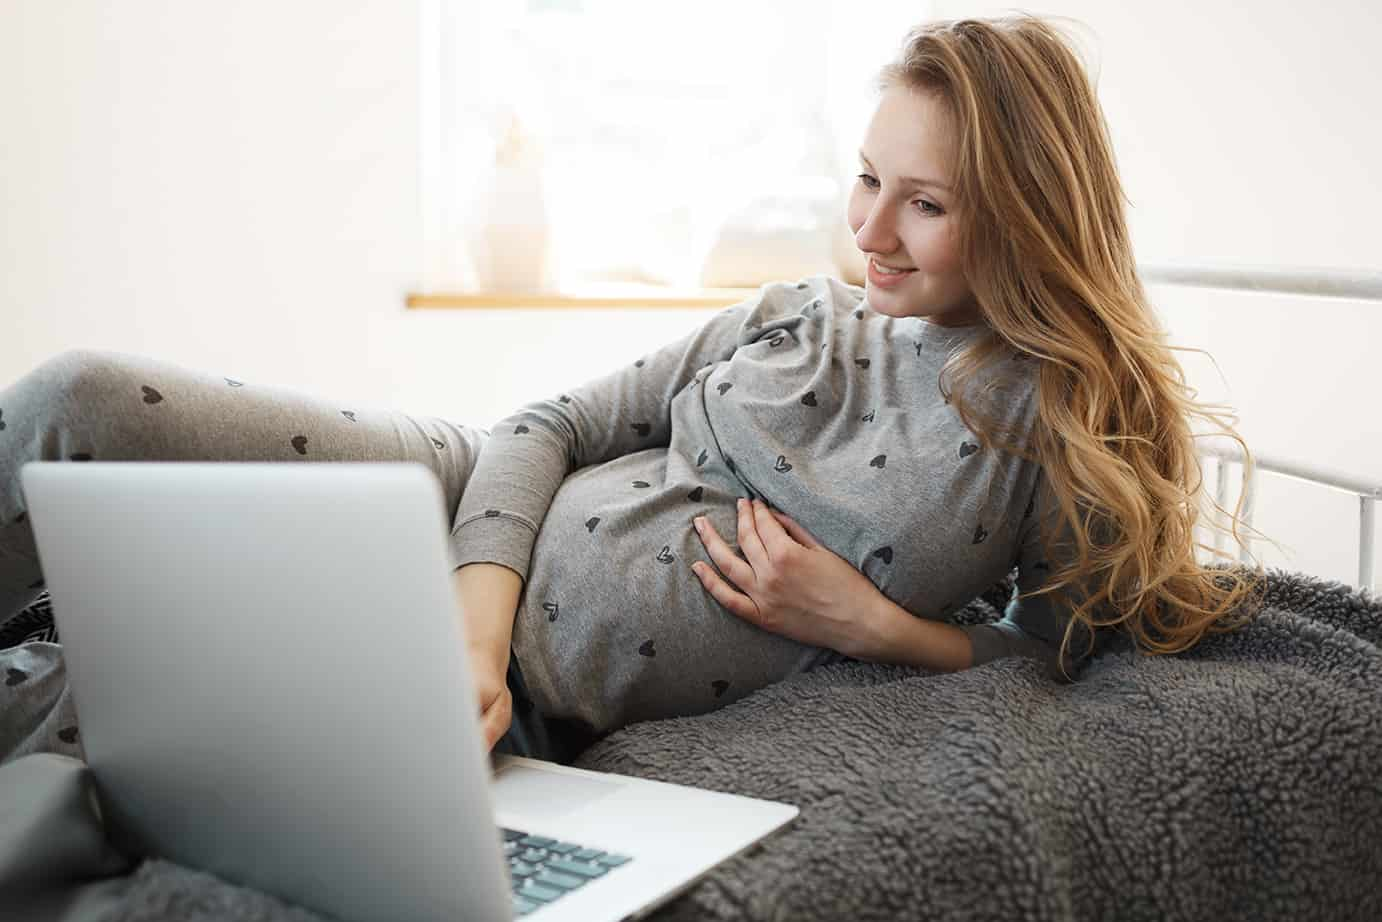 Spending pregnancy period with joy. Beautiful blonde young pregnant woman in comfy home clothes lying on bed, looking for good movie to watch on laptop, relaxing, holding hand on her belly.